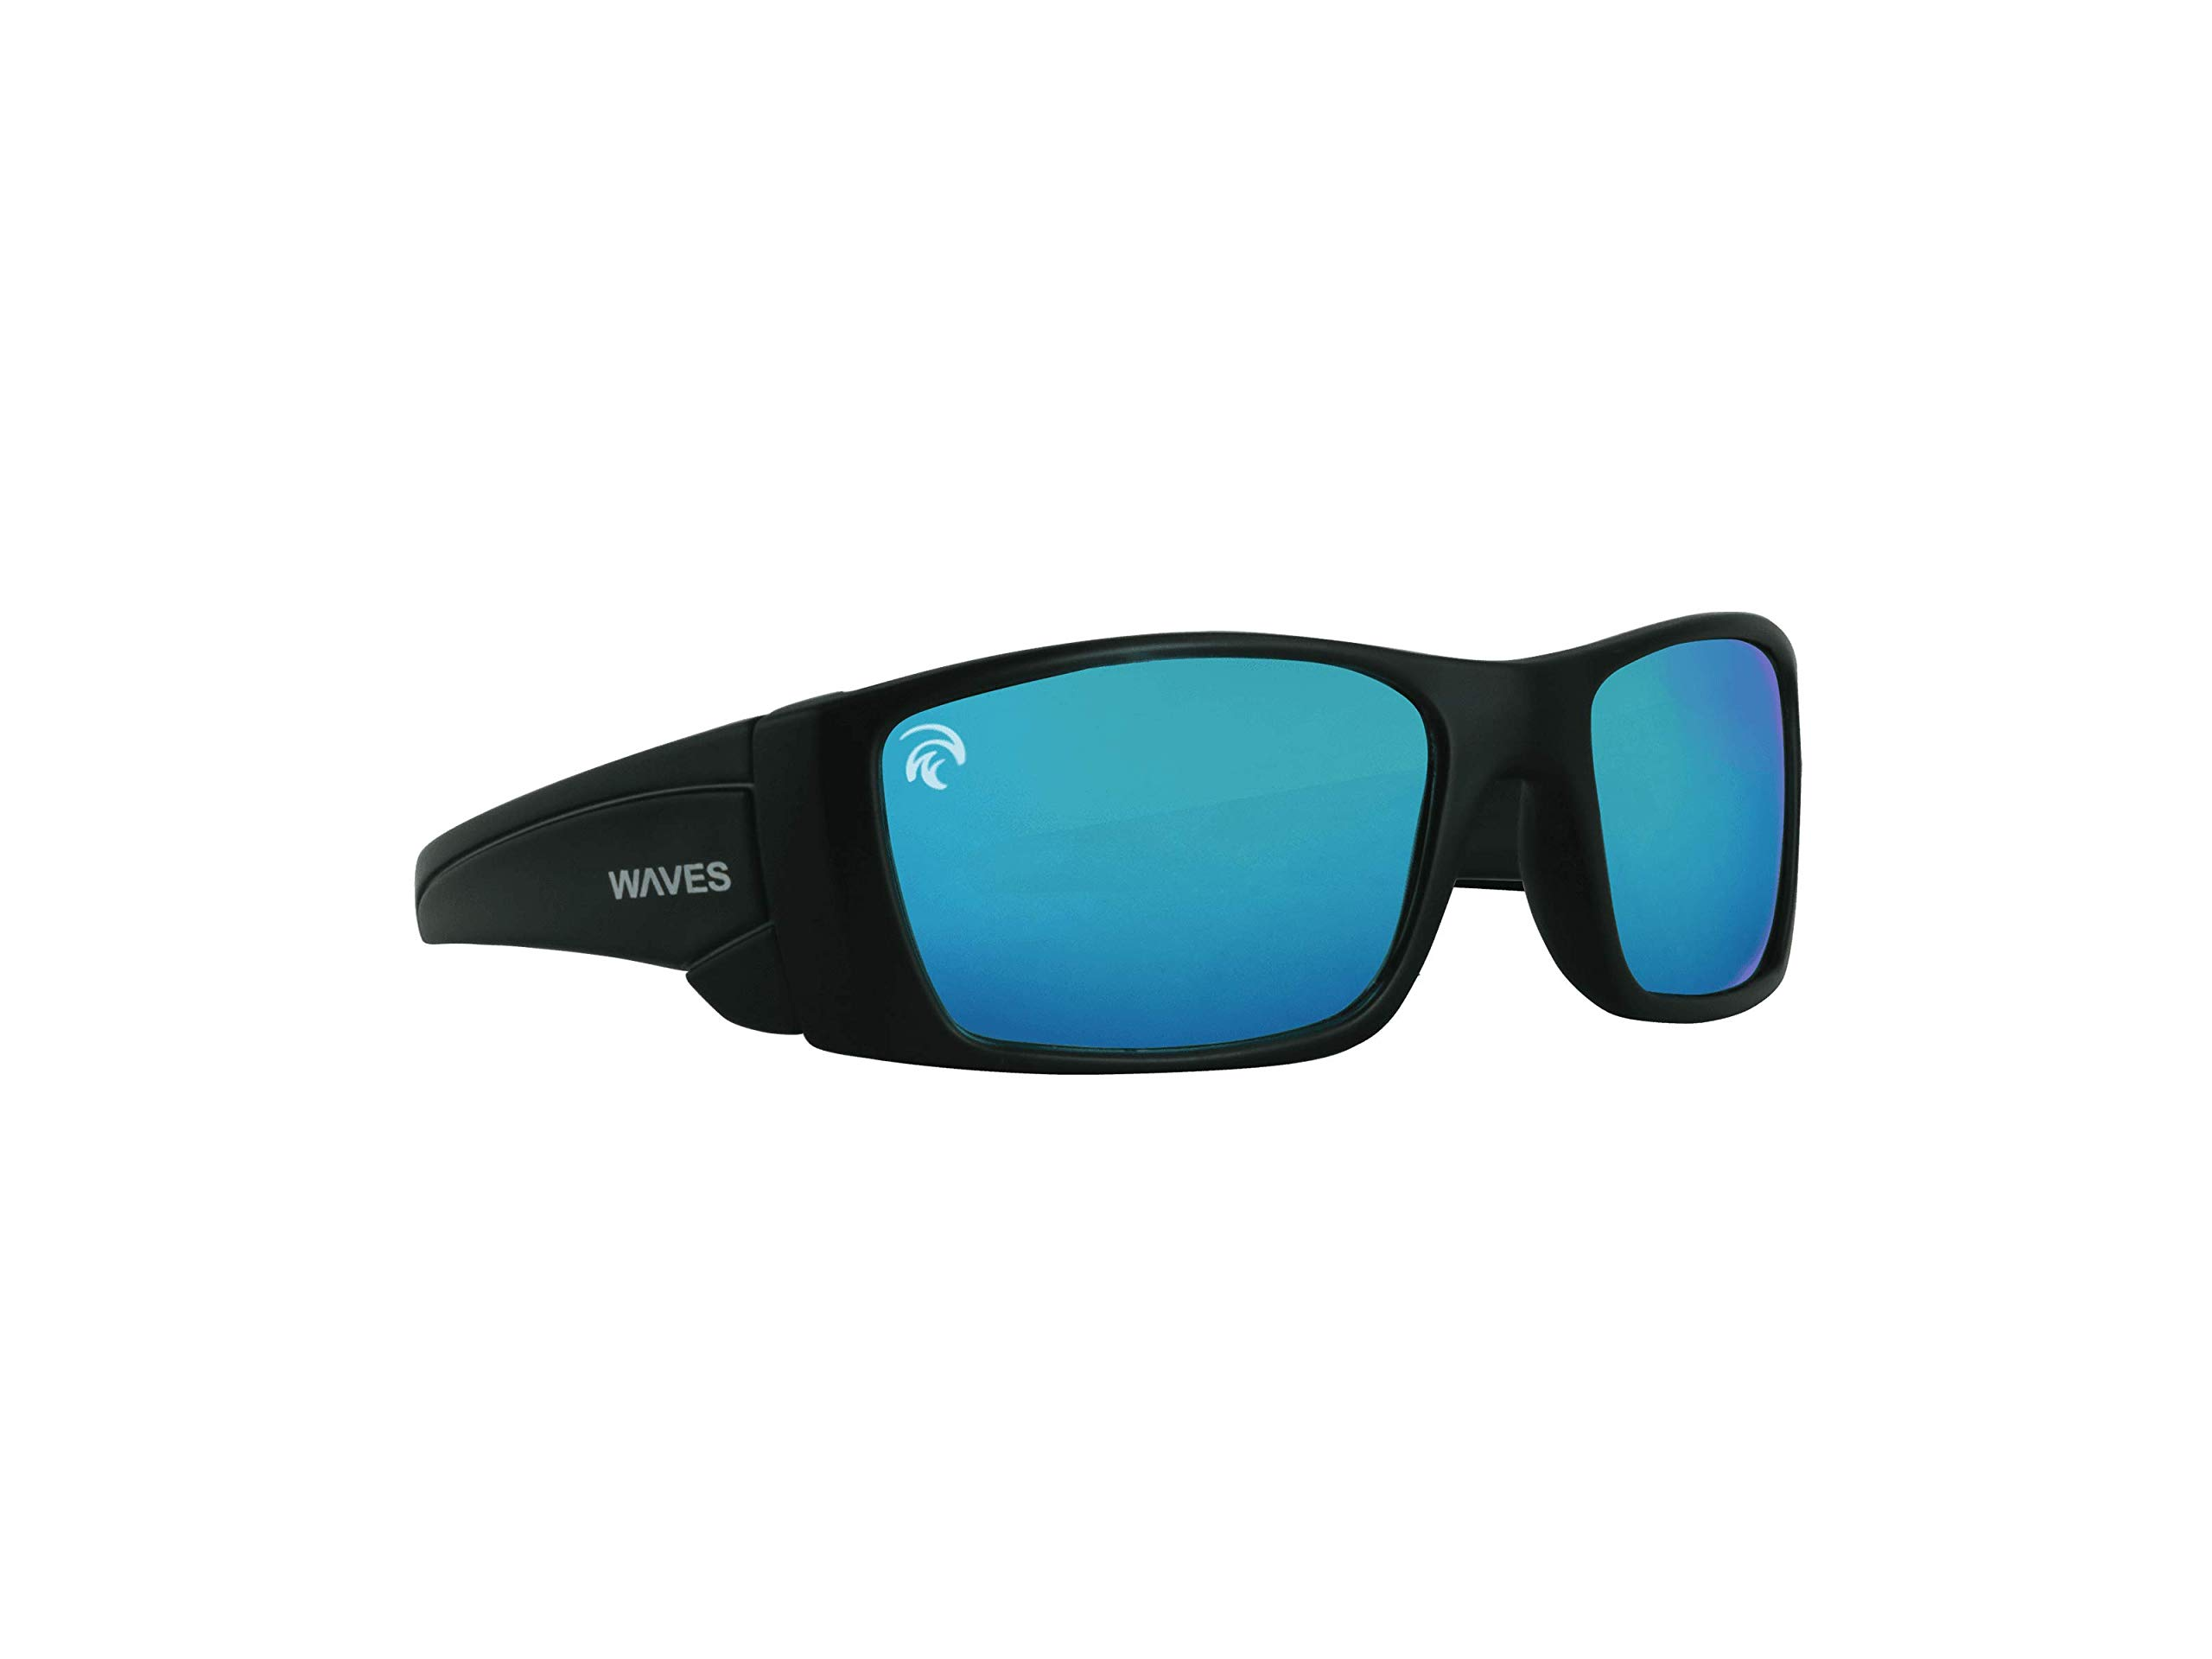 Waves Gear Floating Polarized Sunglasses | Unsinkable Sunglasses for Fishing, Boating, Water Sports.Paddle Boarding (Black/Blue) by Waves Gear